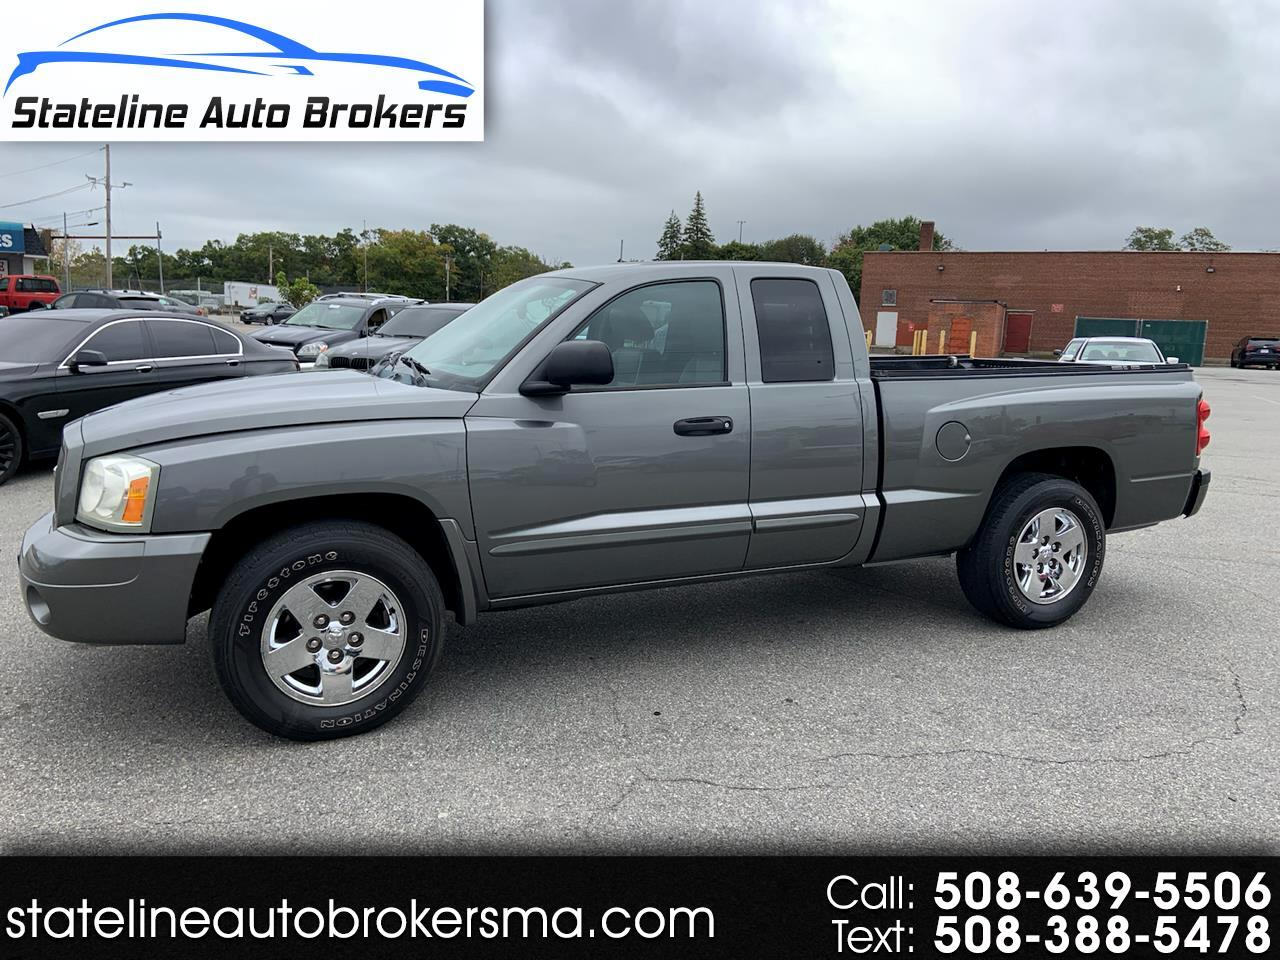 2006 Dodge Dakota 2dr Club Cab 131 4WD Laramie